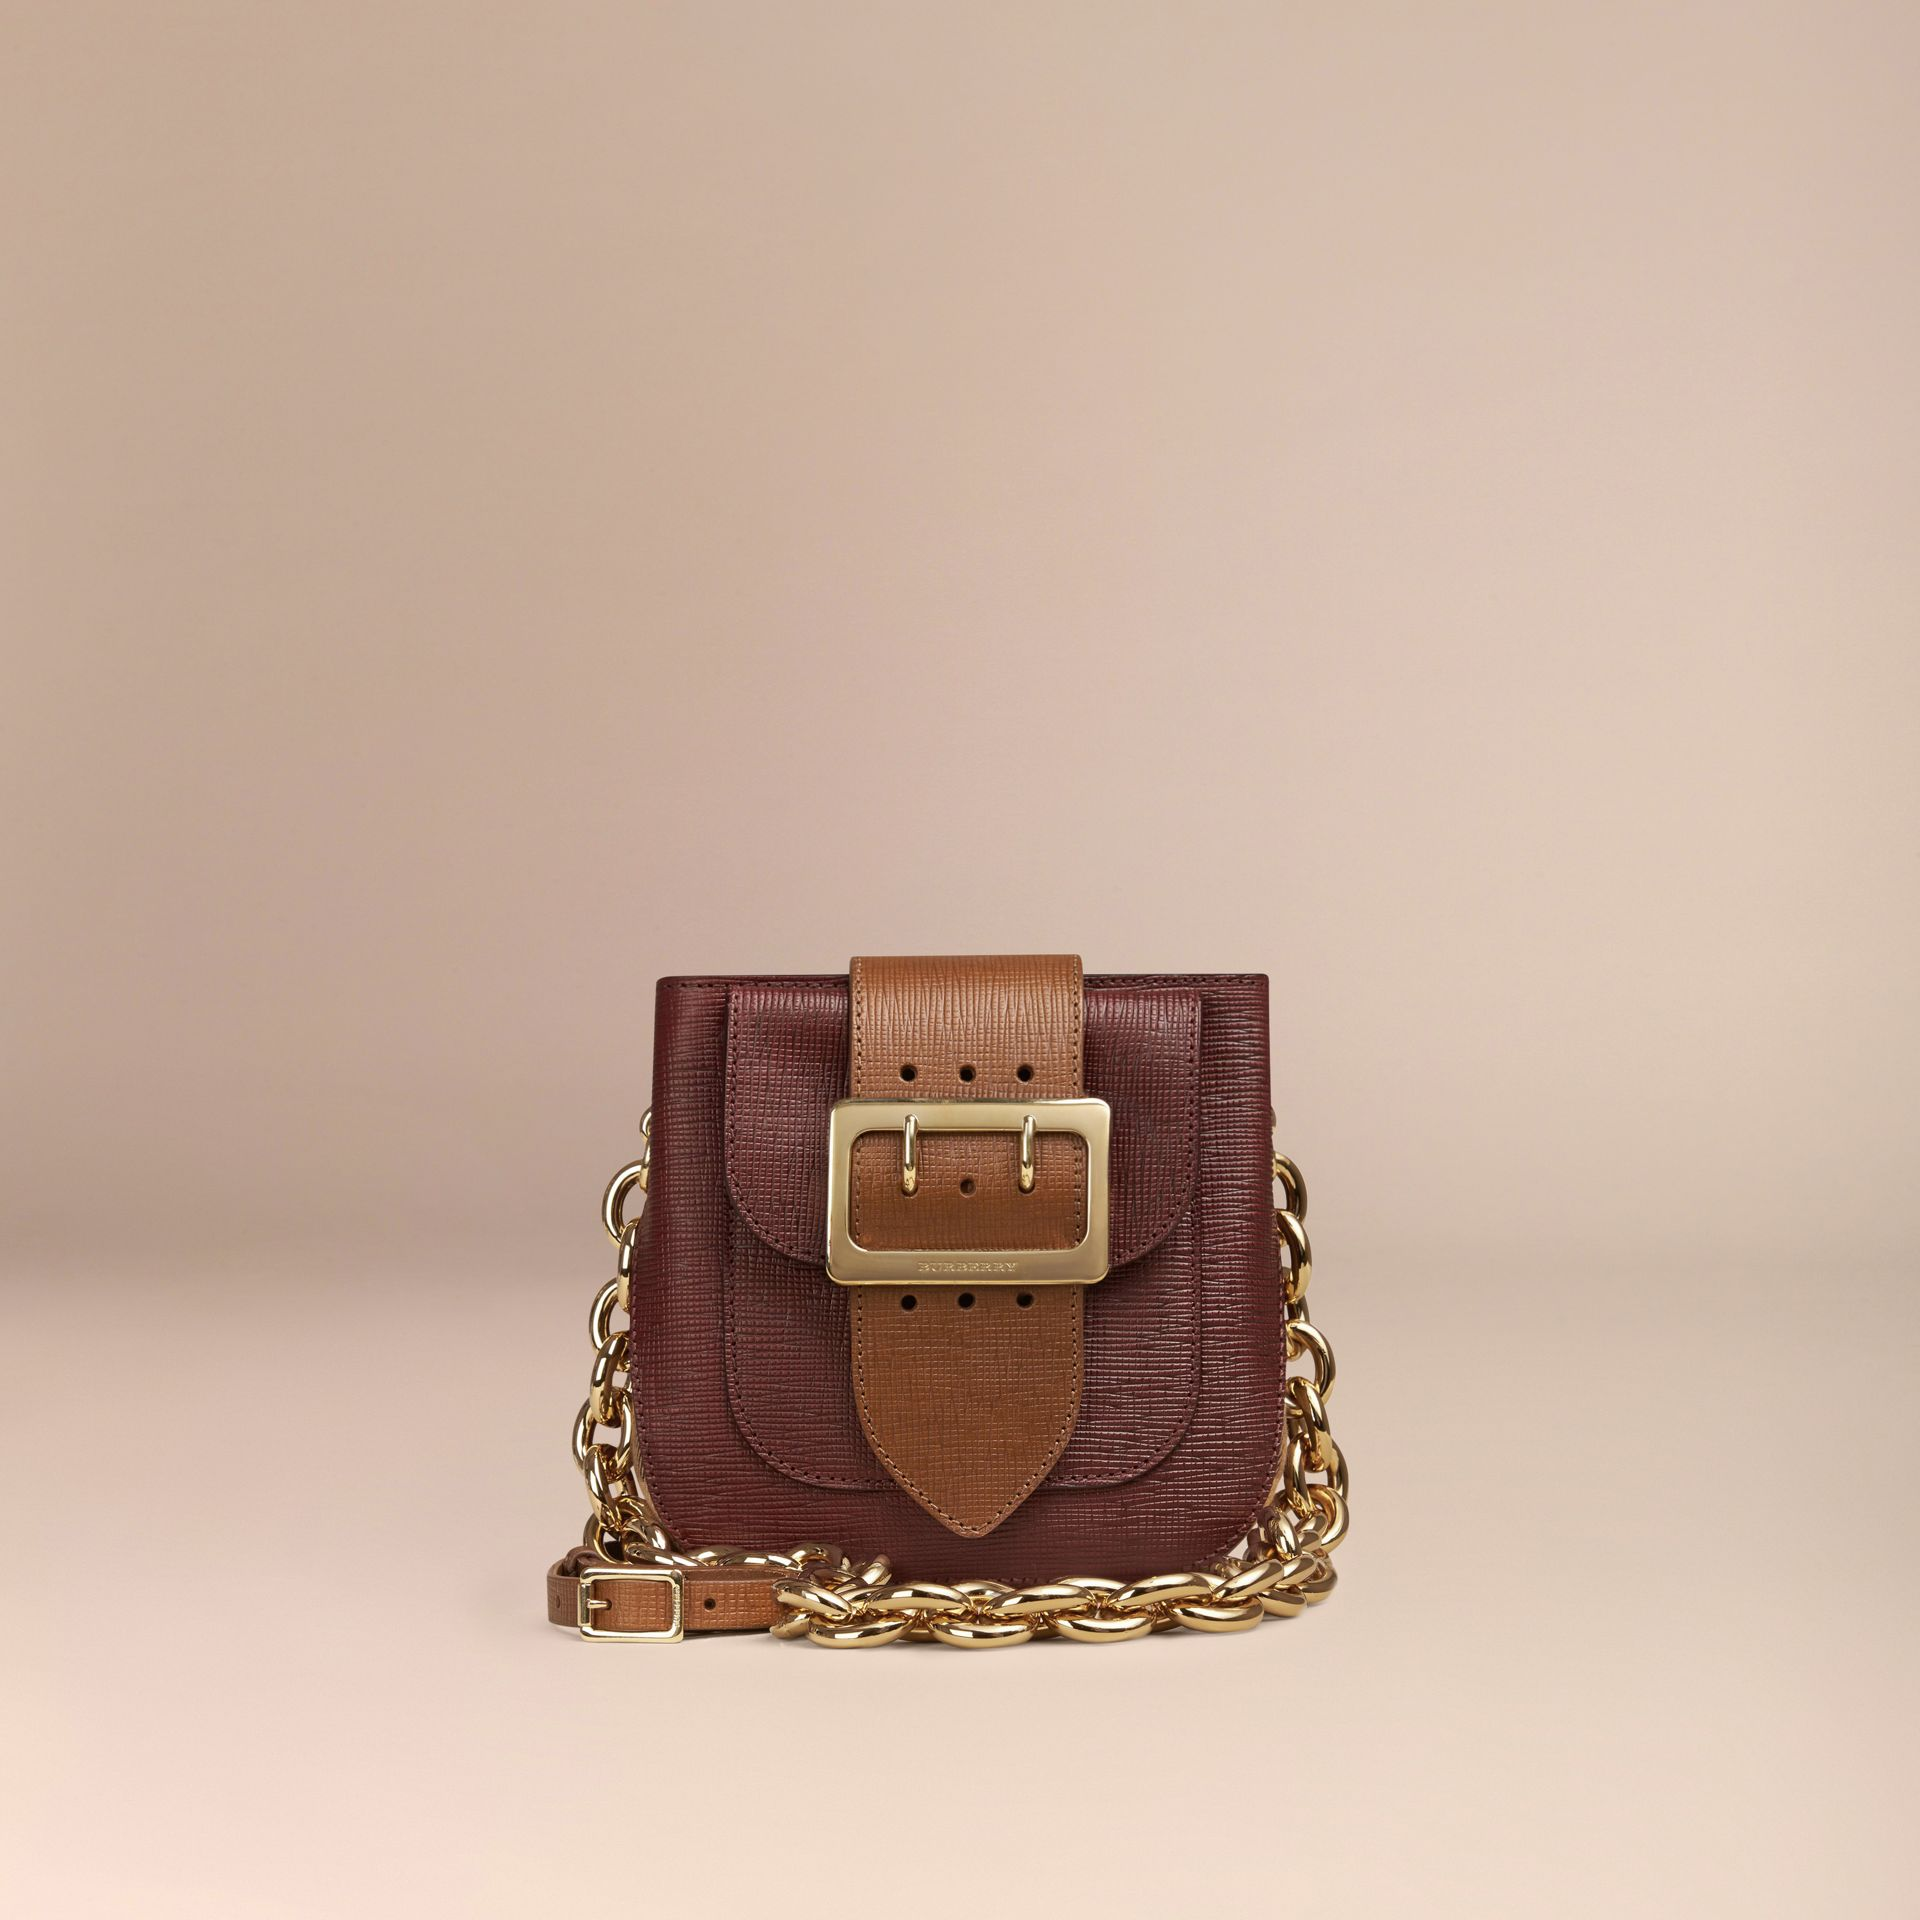 Burgundy The Small Square Buckle Bag in Leather and House Check Burgundy - gallery image 7